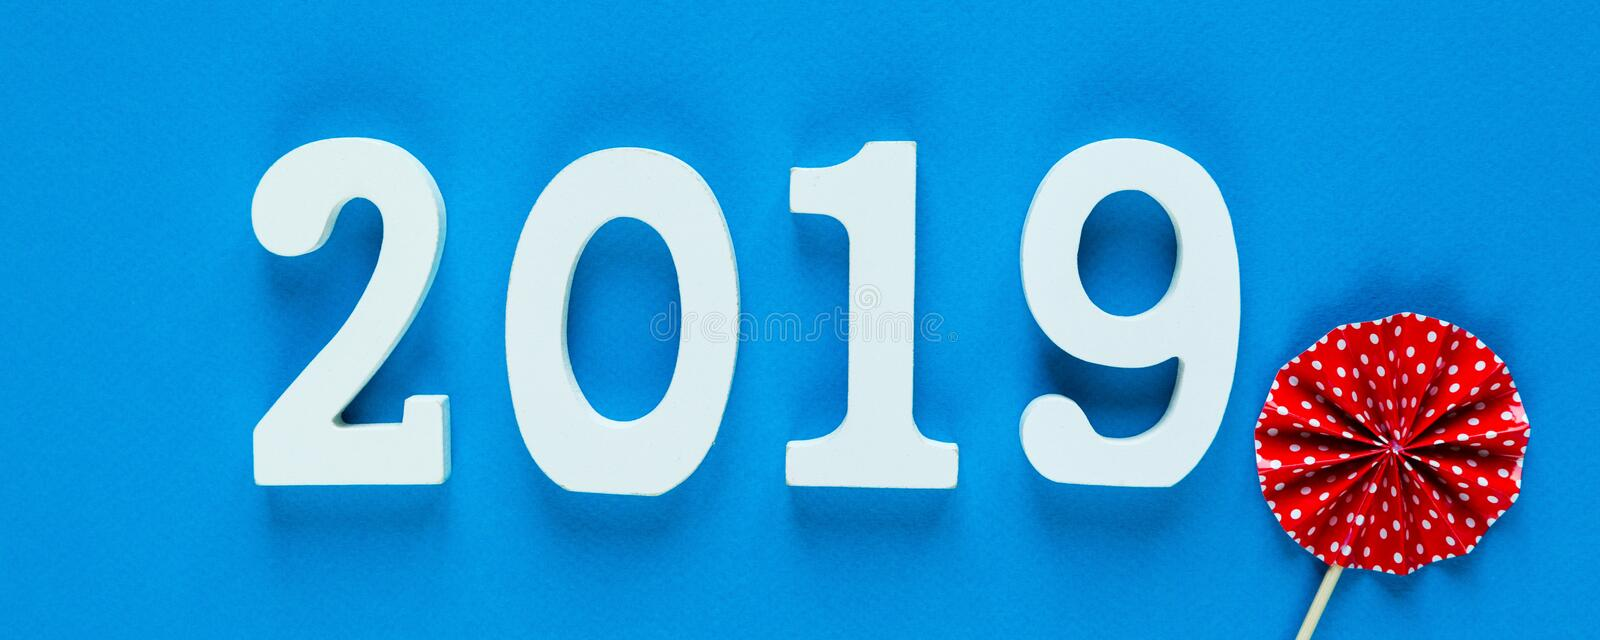 White wooden Numbers 2019 on yellow background. creative Christmas and New year background, decoration,. White wooden Numbers 2019 on blue background. creative royalty free stock image